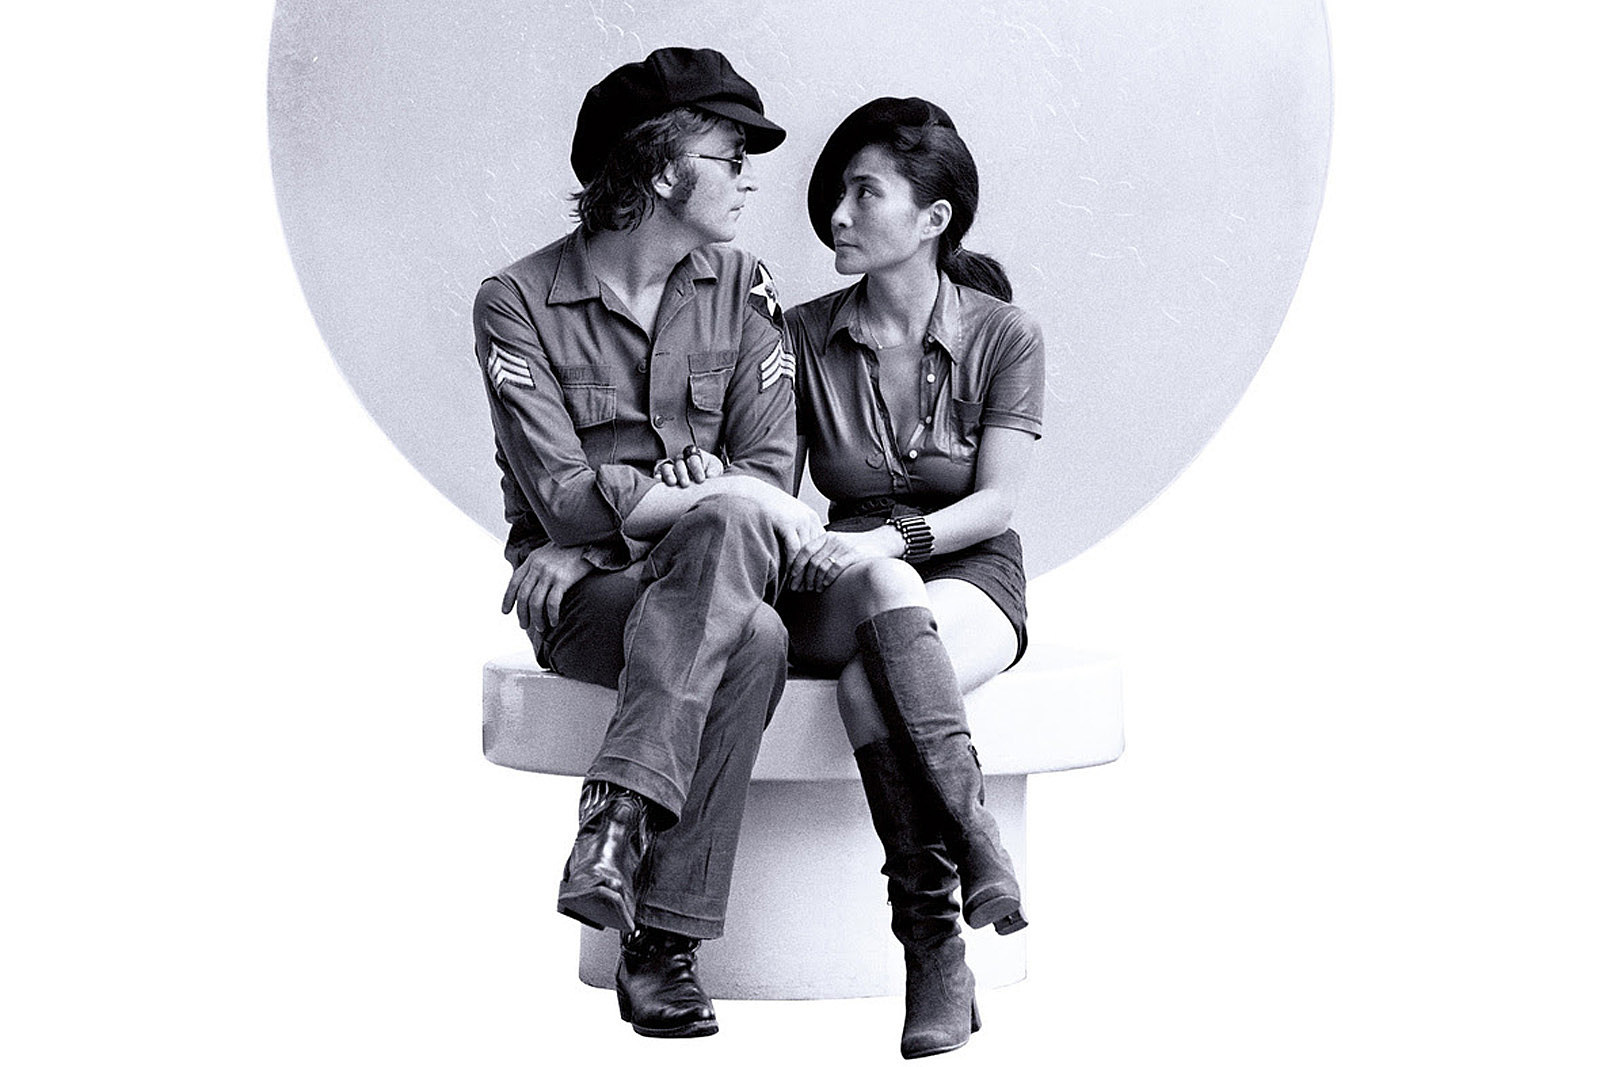 John Lennon and Yoko Ono: Imagine / Gimme Some Truth